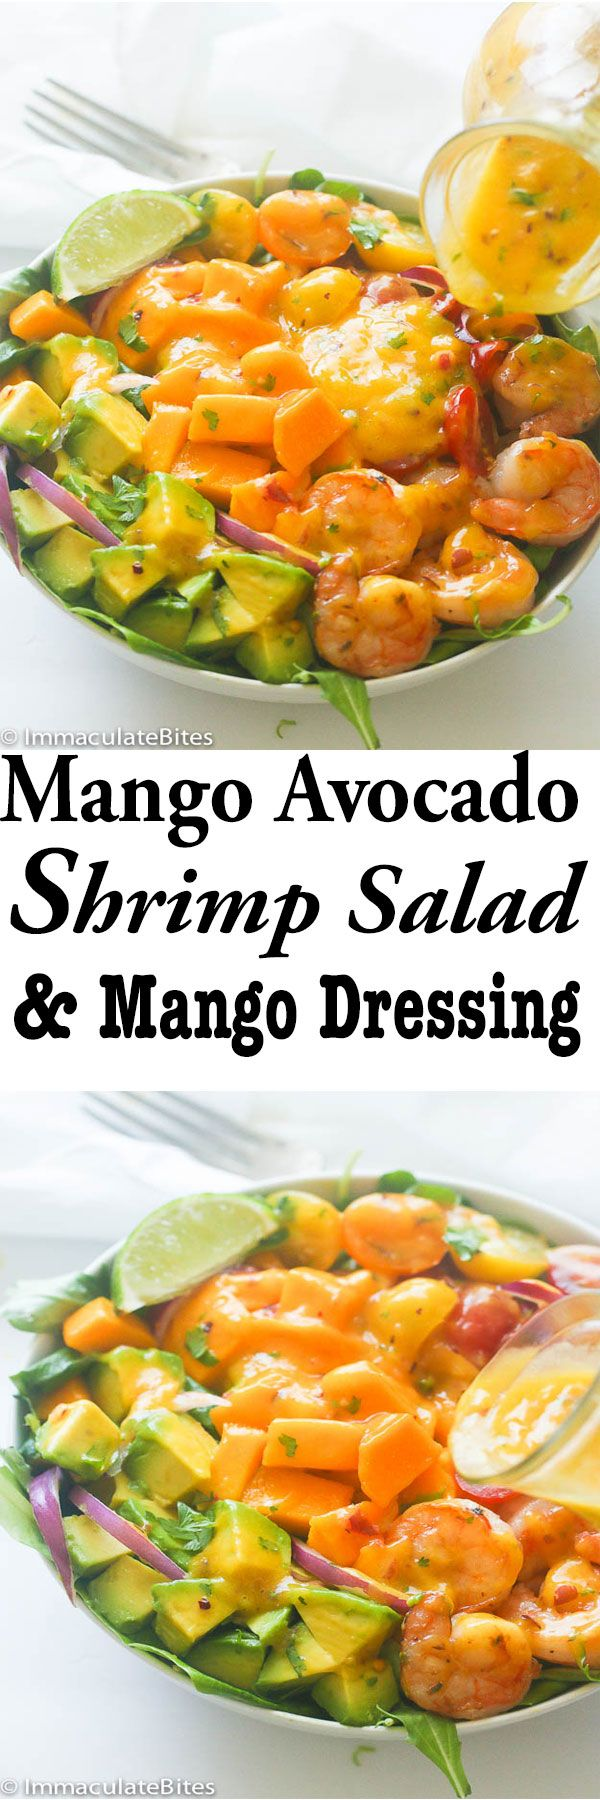 Mango Avocado Shrimp Salad & Spicy Mango Dressing- A hearty and delicious tropical salad with summer fruits and…